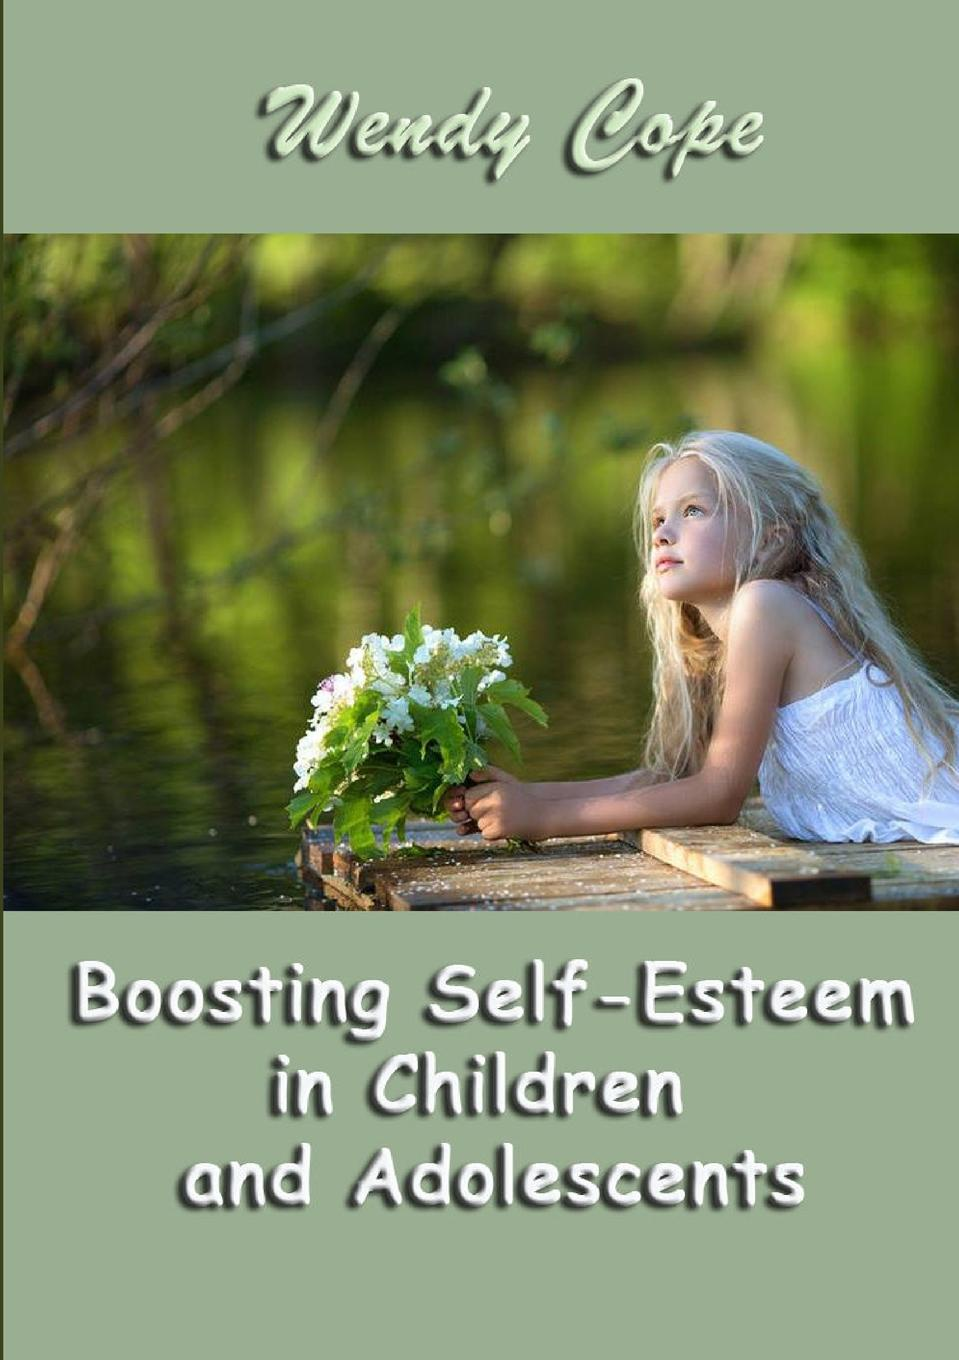 Wendy Cope Boosting Self-Esteem in Children and Adolescents